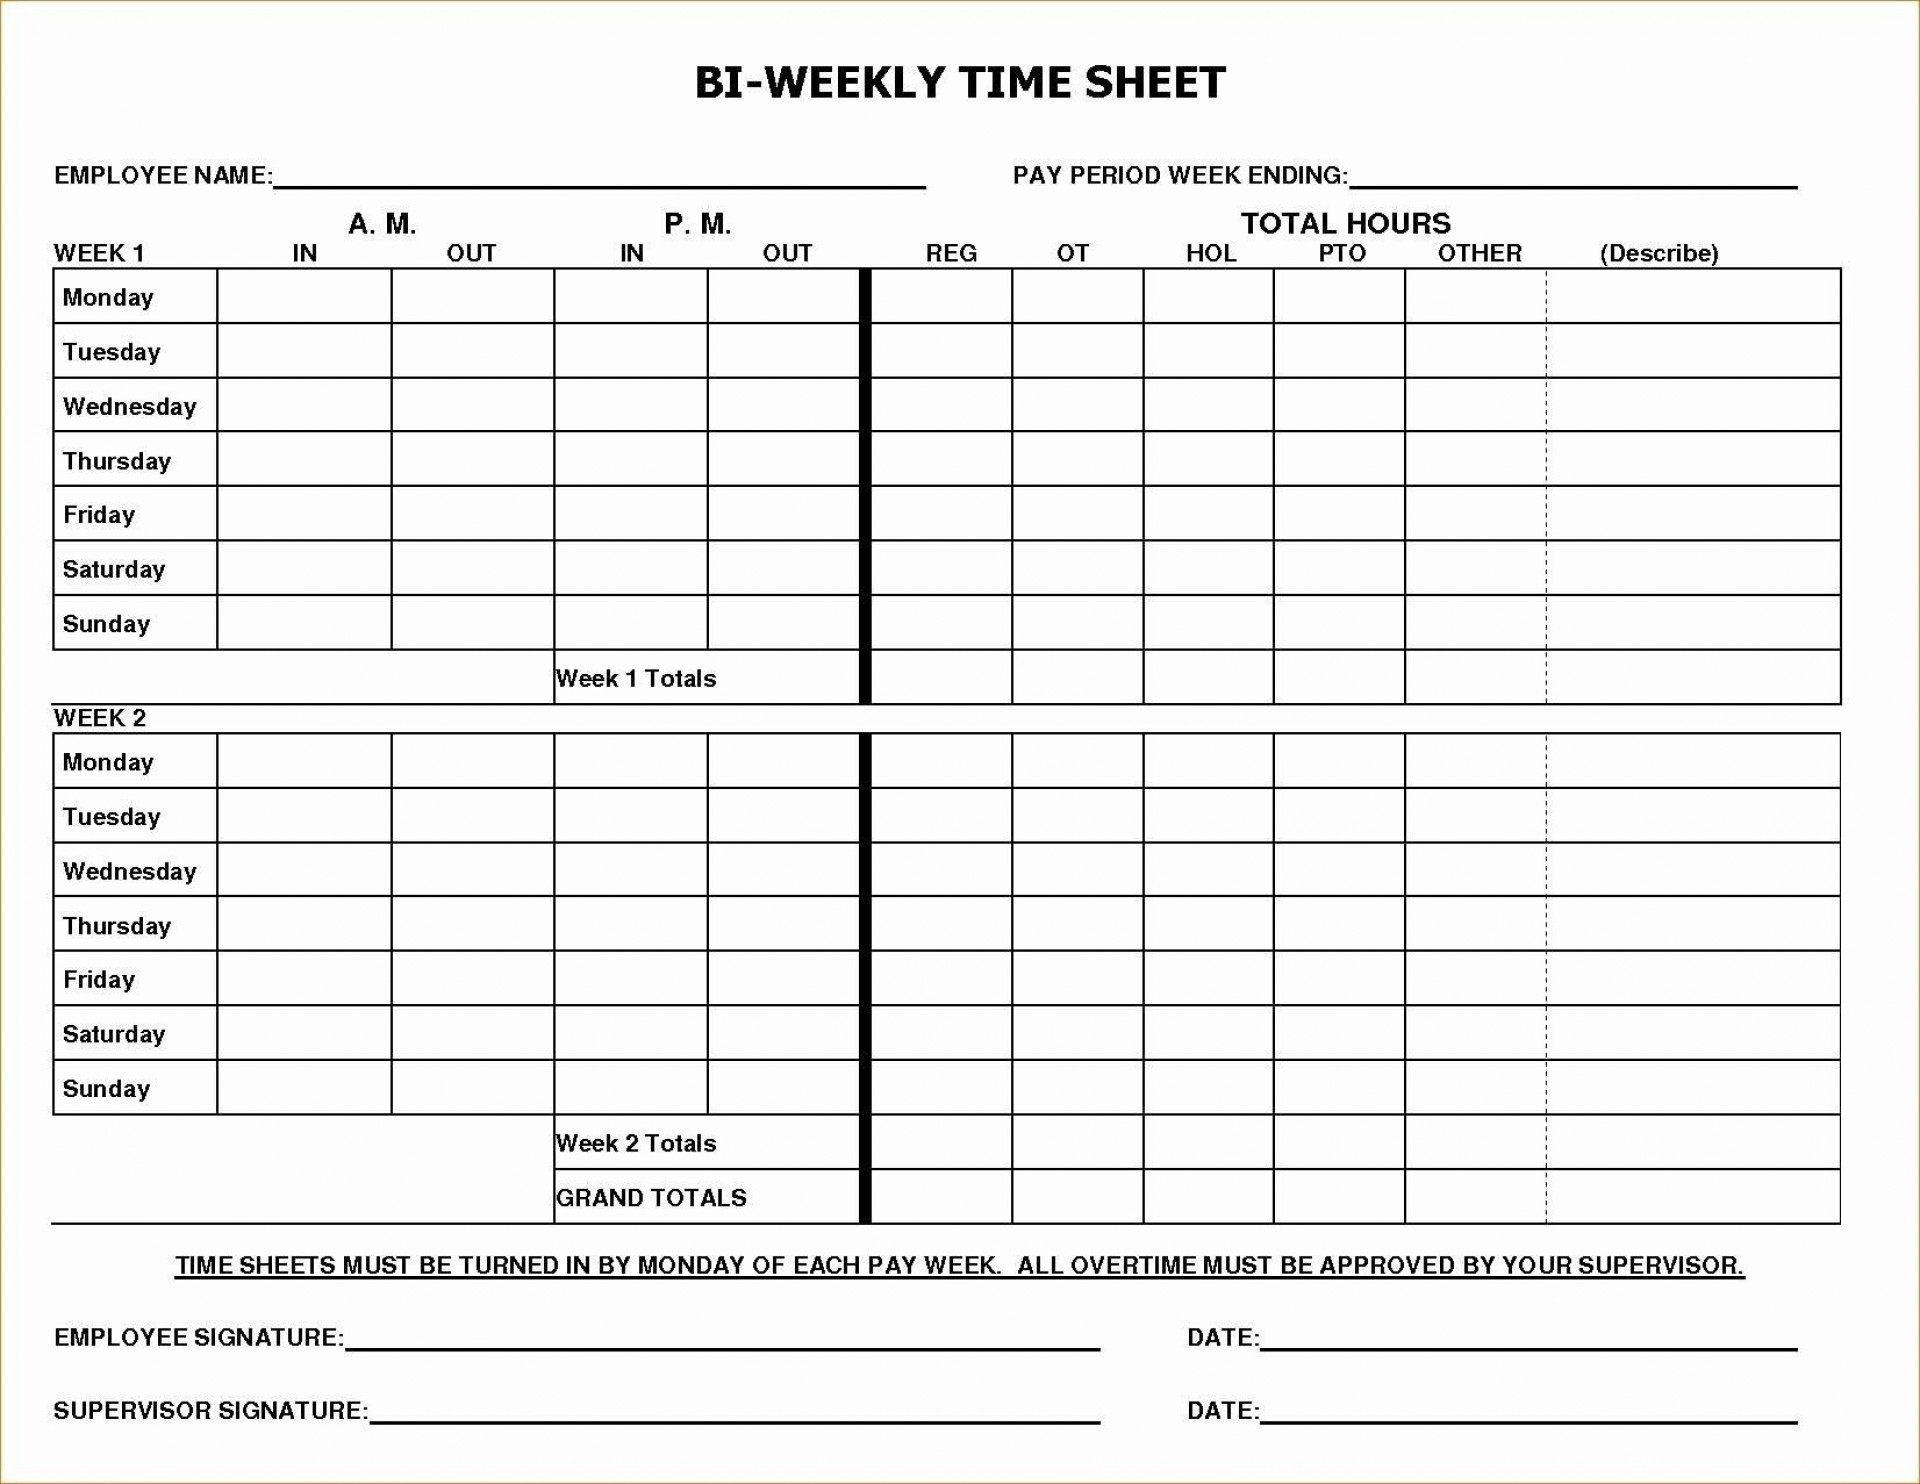 003 Dreaded Employee Time Card Form Image  Timesheet Template Excel Sheet Free1920